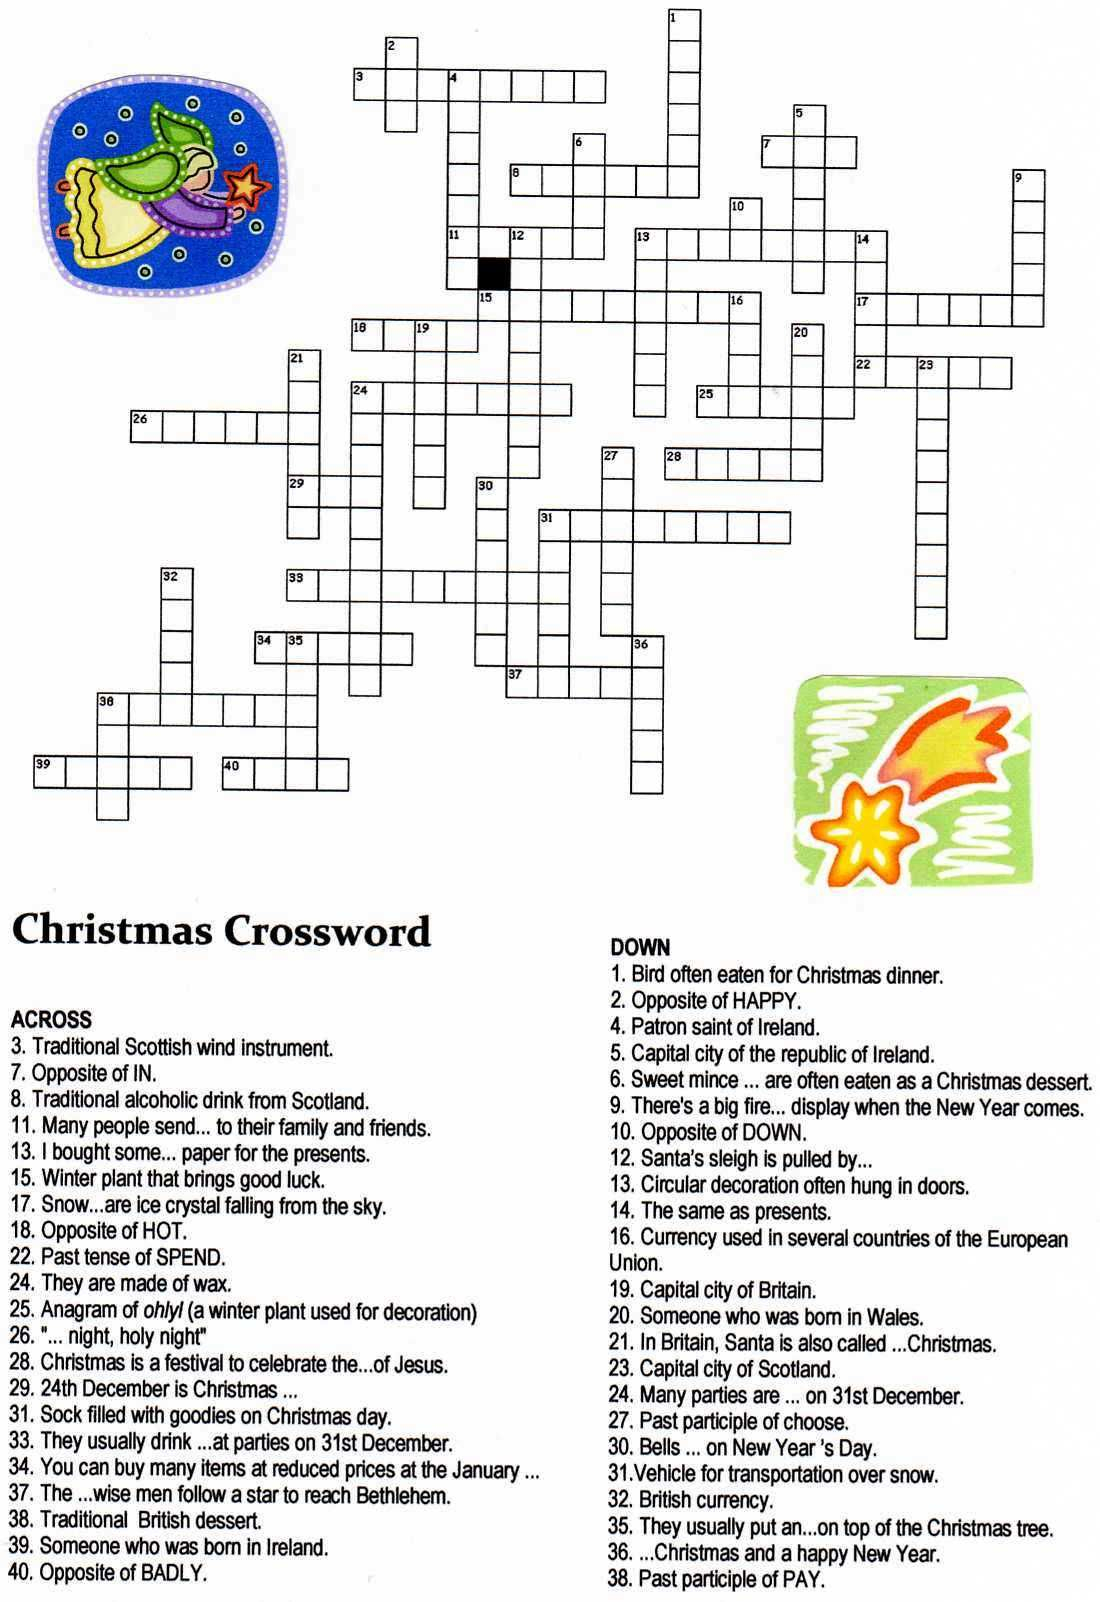 Christmas Angel Crossword Puzzle | Christmas | Christmas Crossword - Christmas Crossword Puzzle Printable With Answers